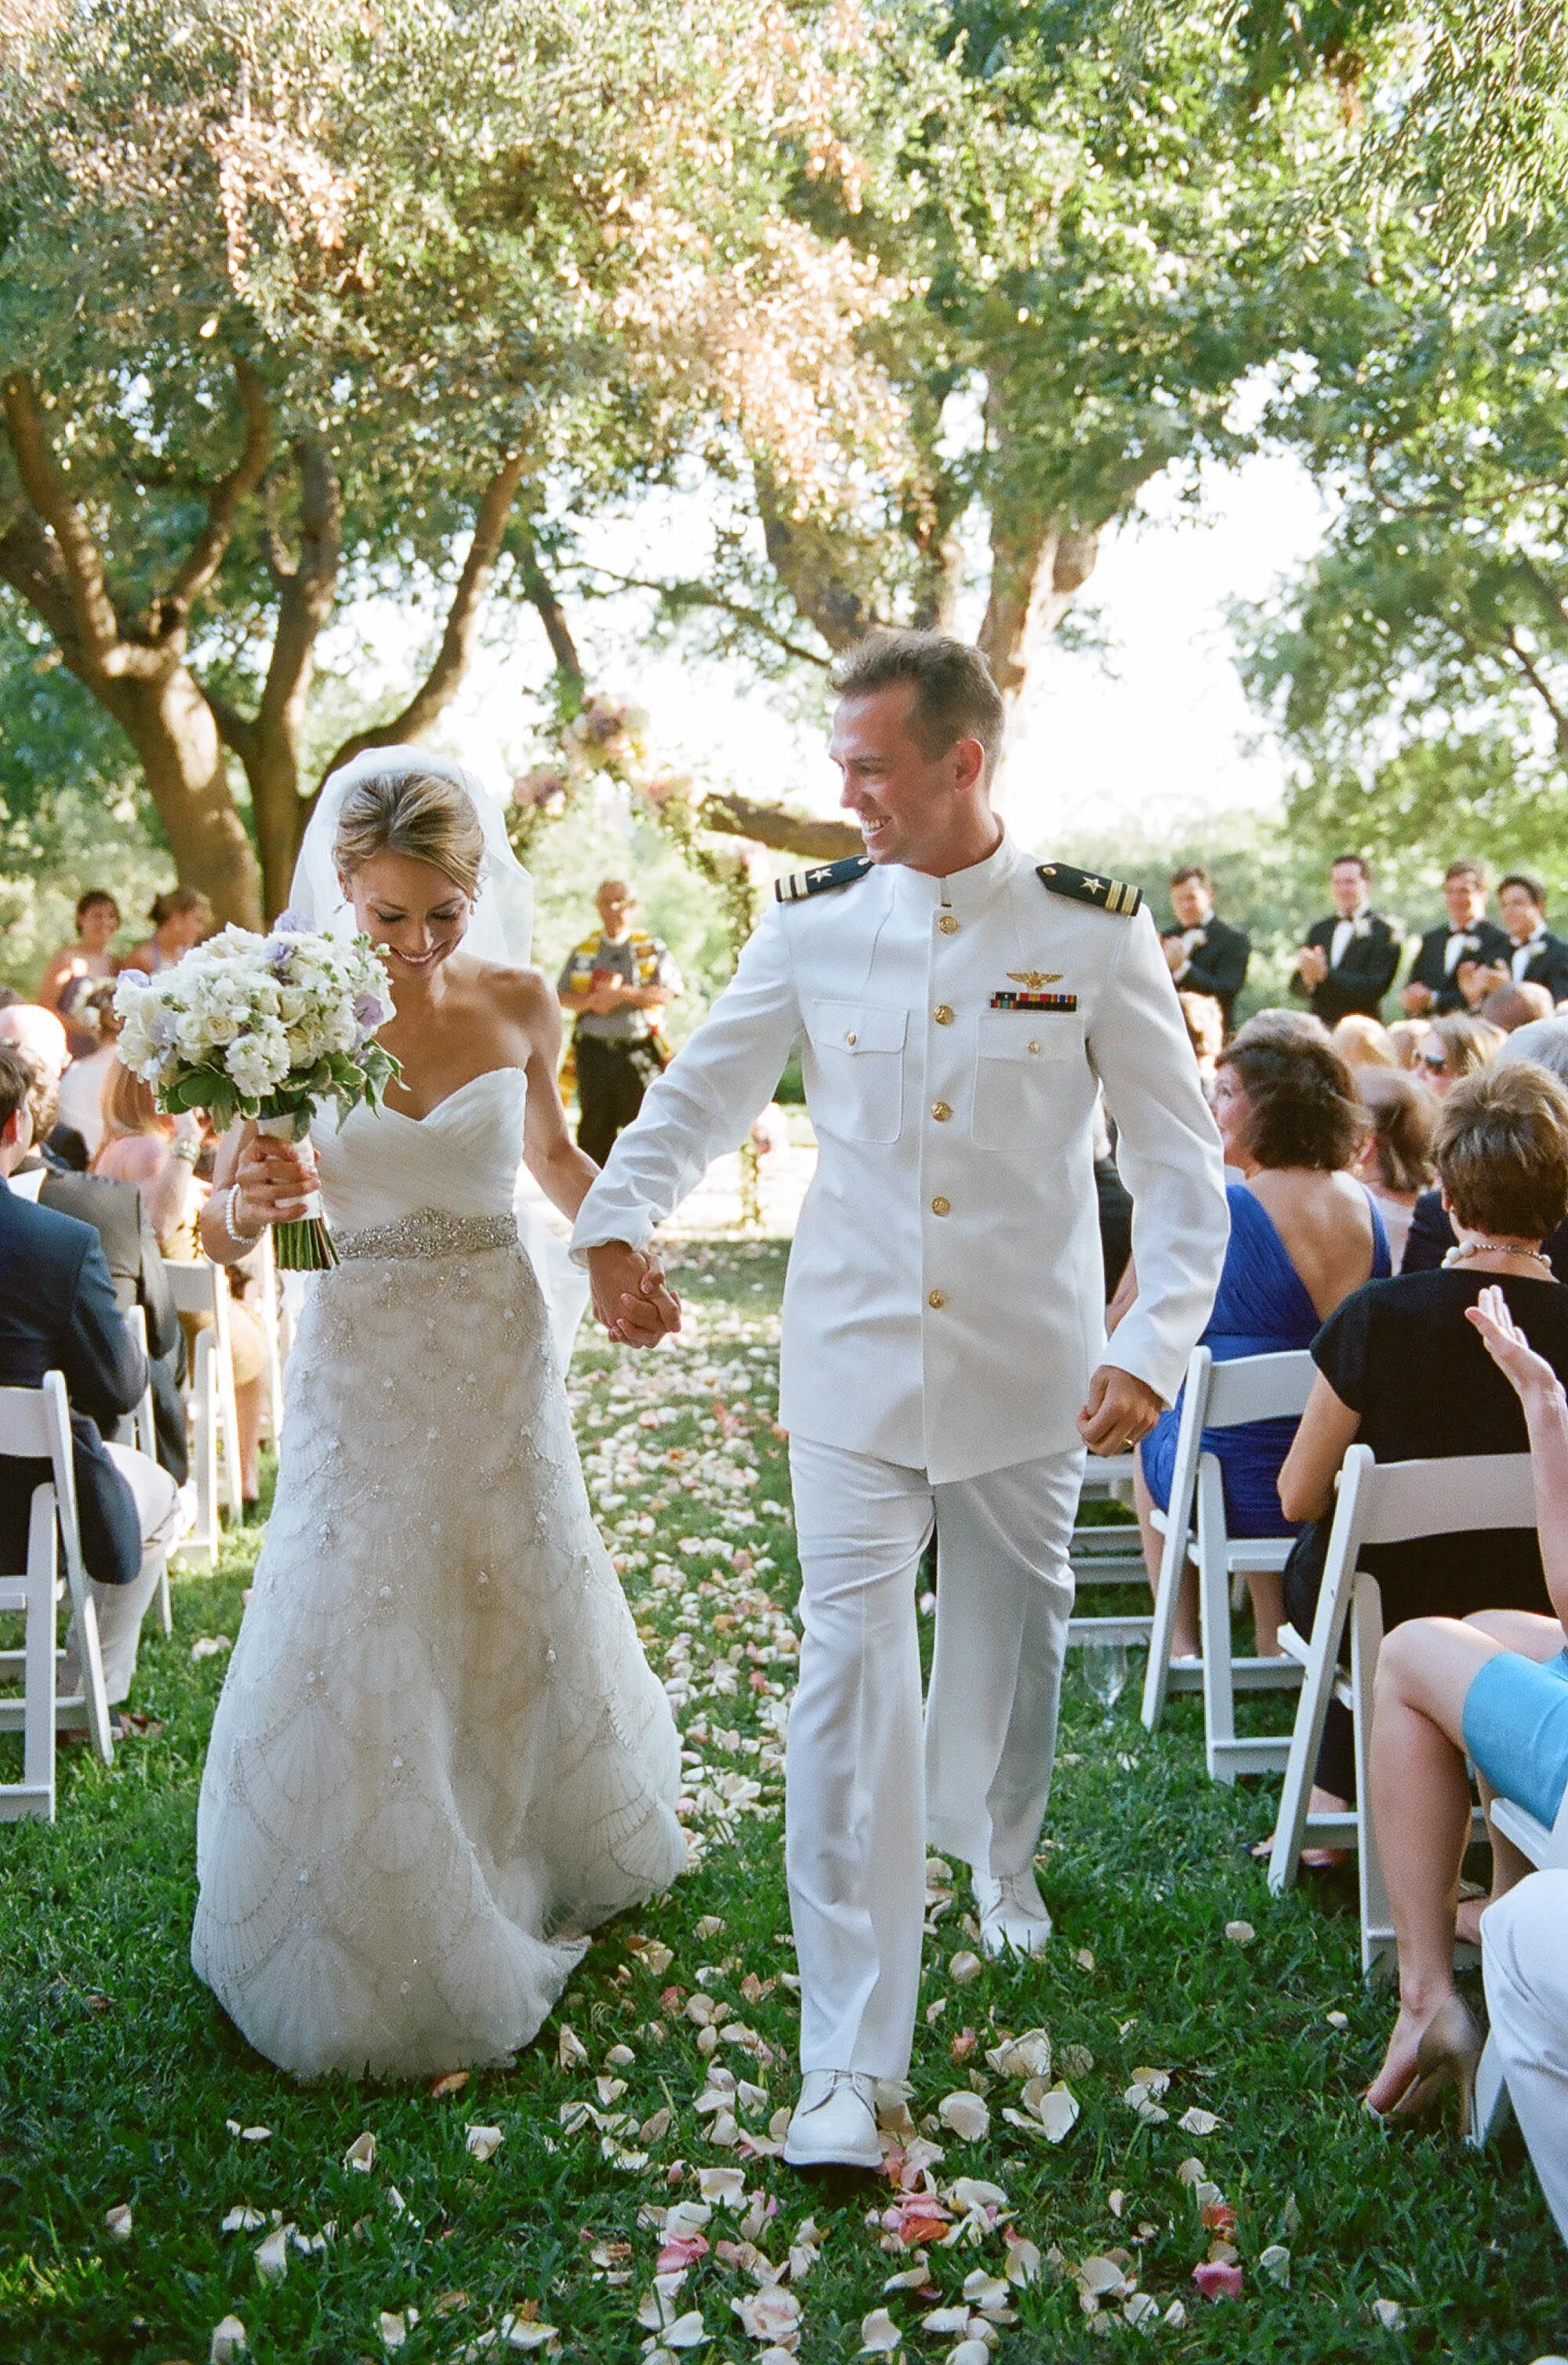 Tips For Planning A Military Wedding